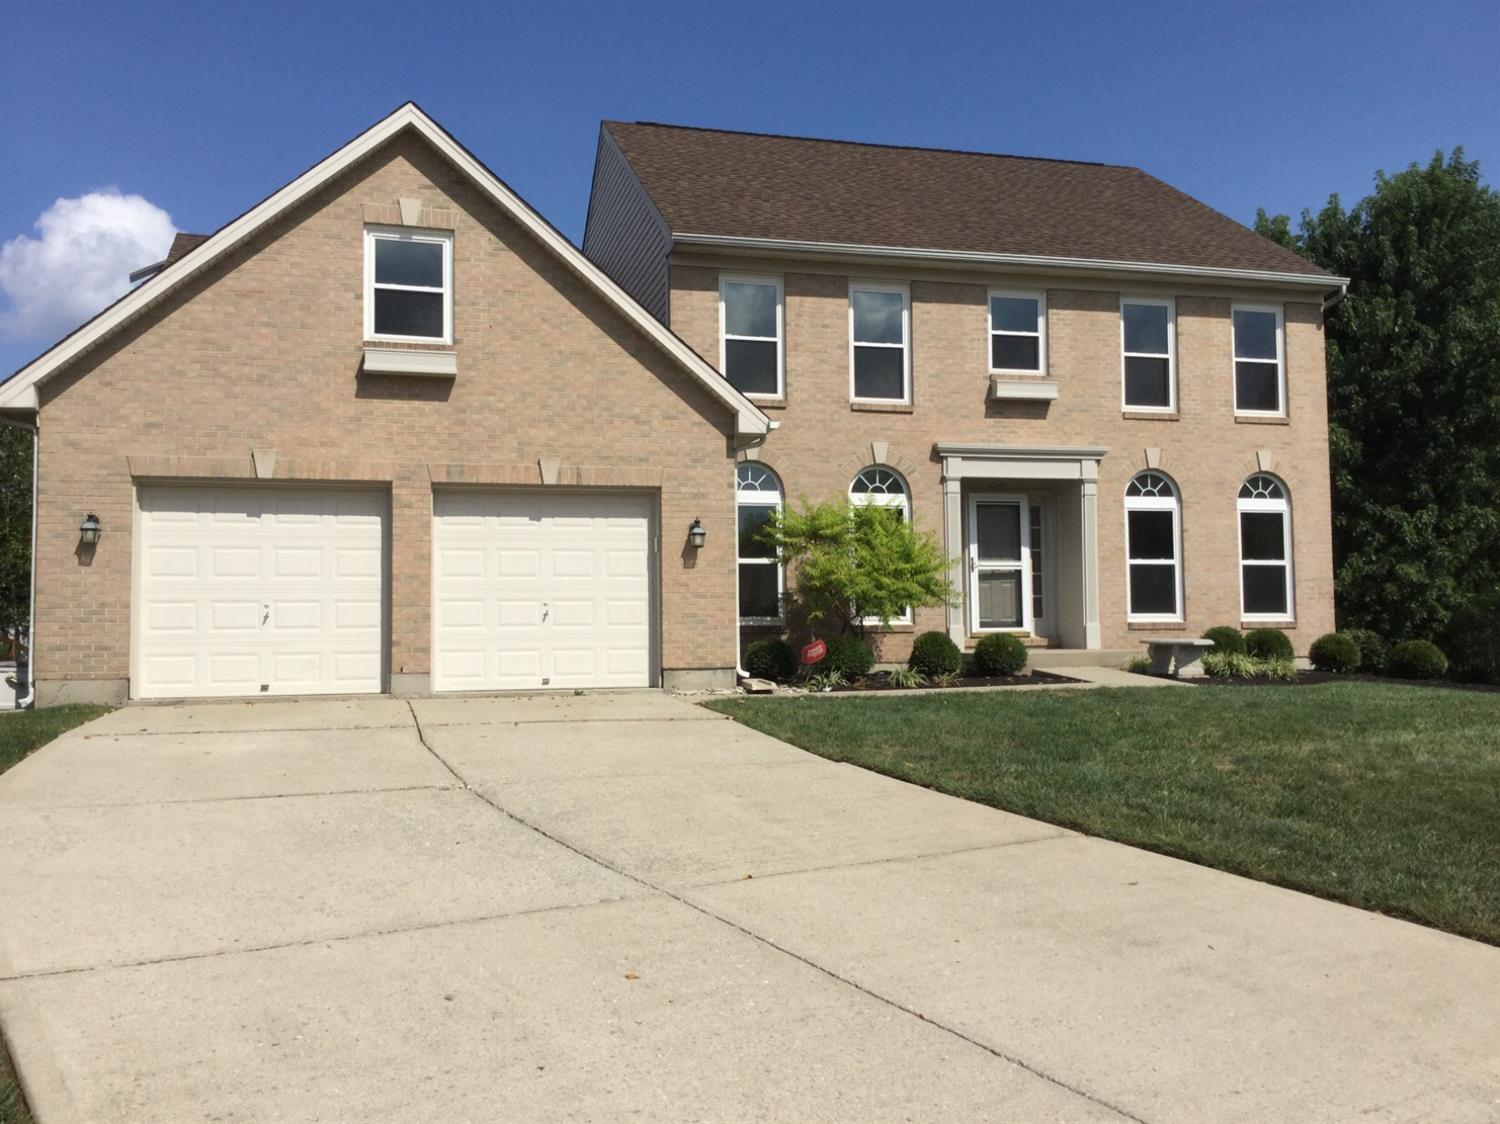 Property for sale at 10141 Meadowknoll Drive, Symmes Twp,  Ohio 45140